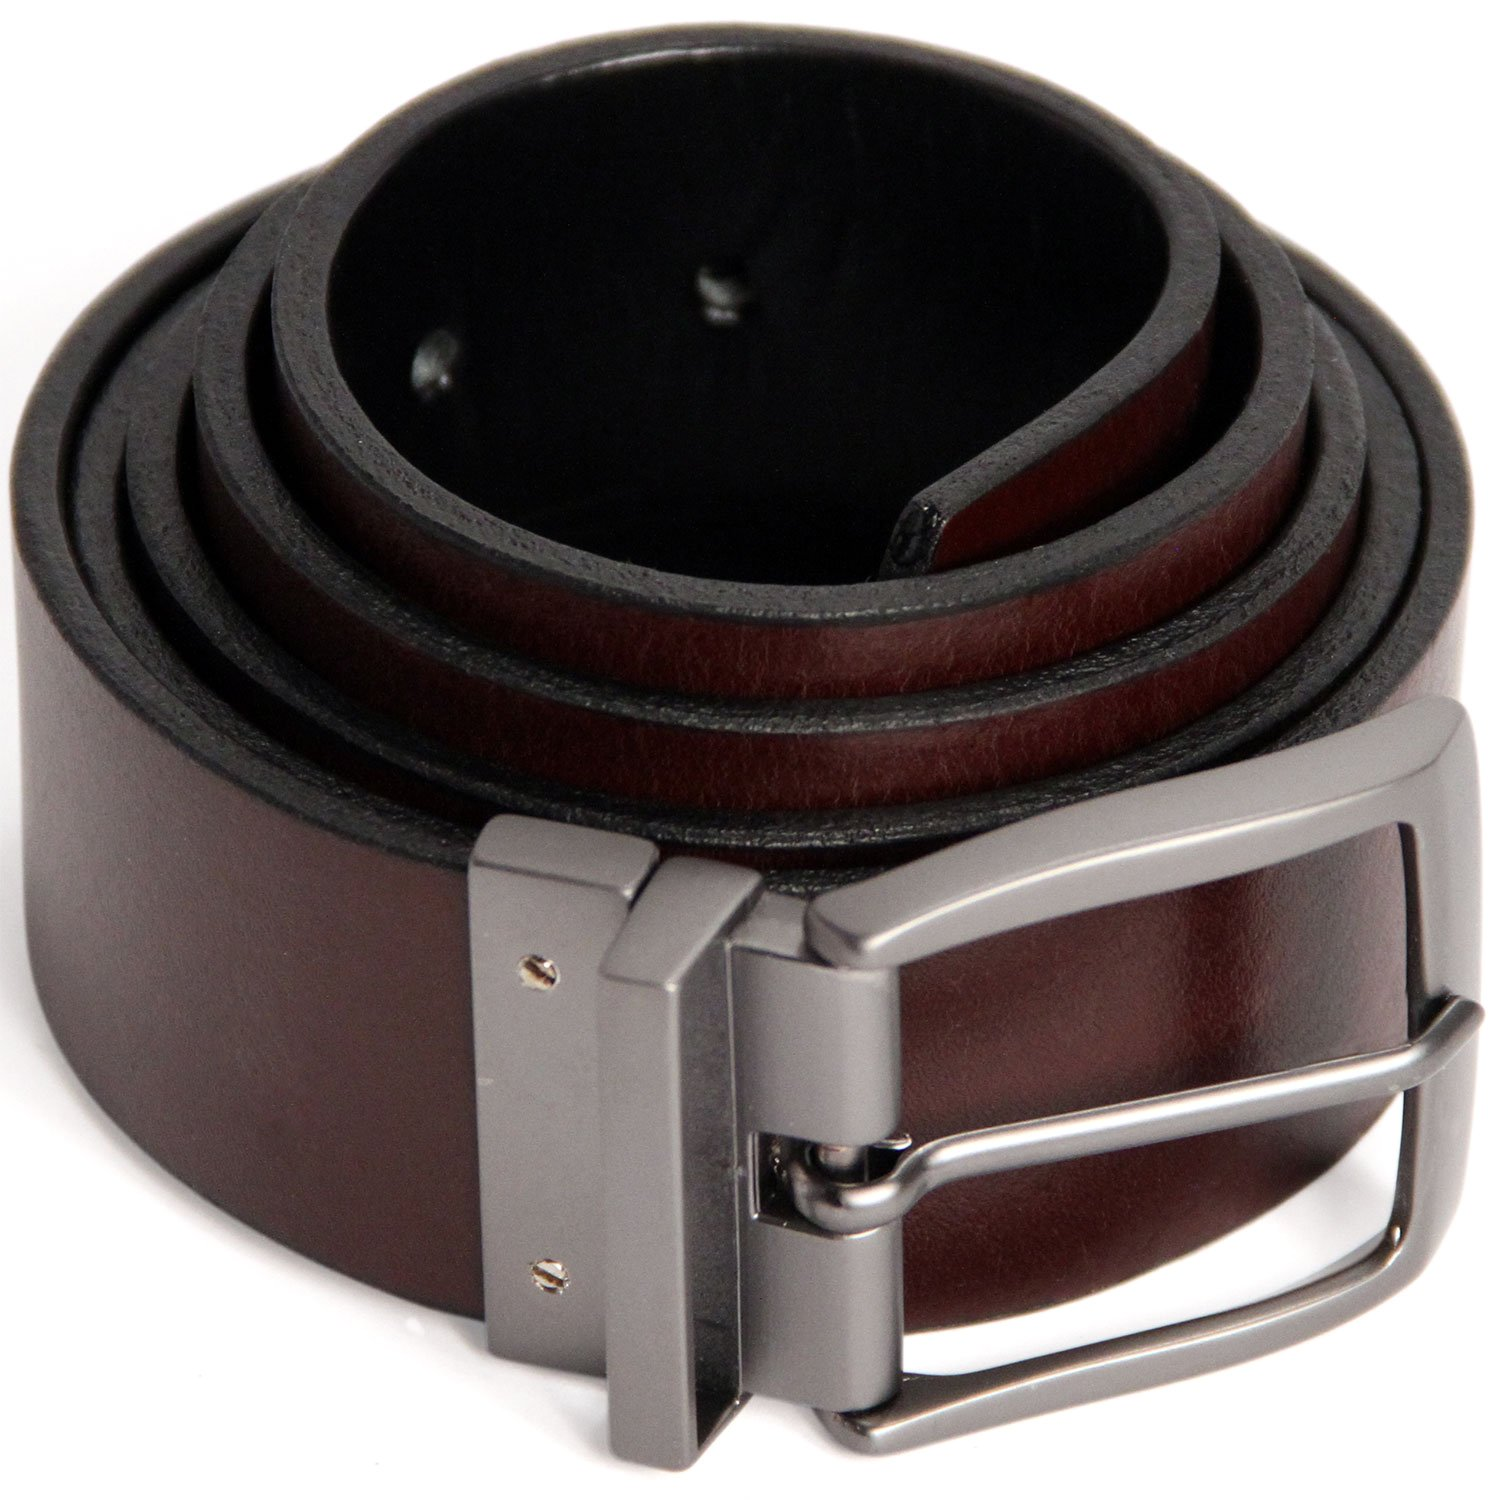 Logical Leather Reversible Men's Belt - Genuine Full Grain Leather Belt for Men - Brown/Black - 36